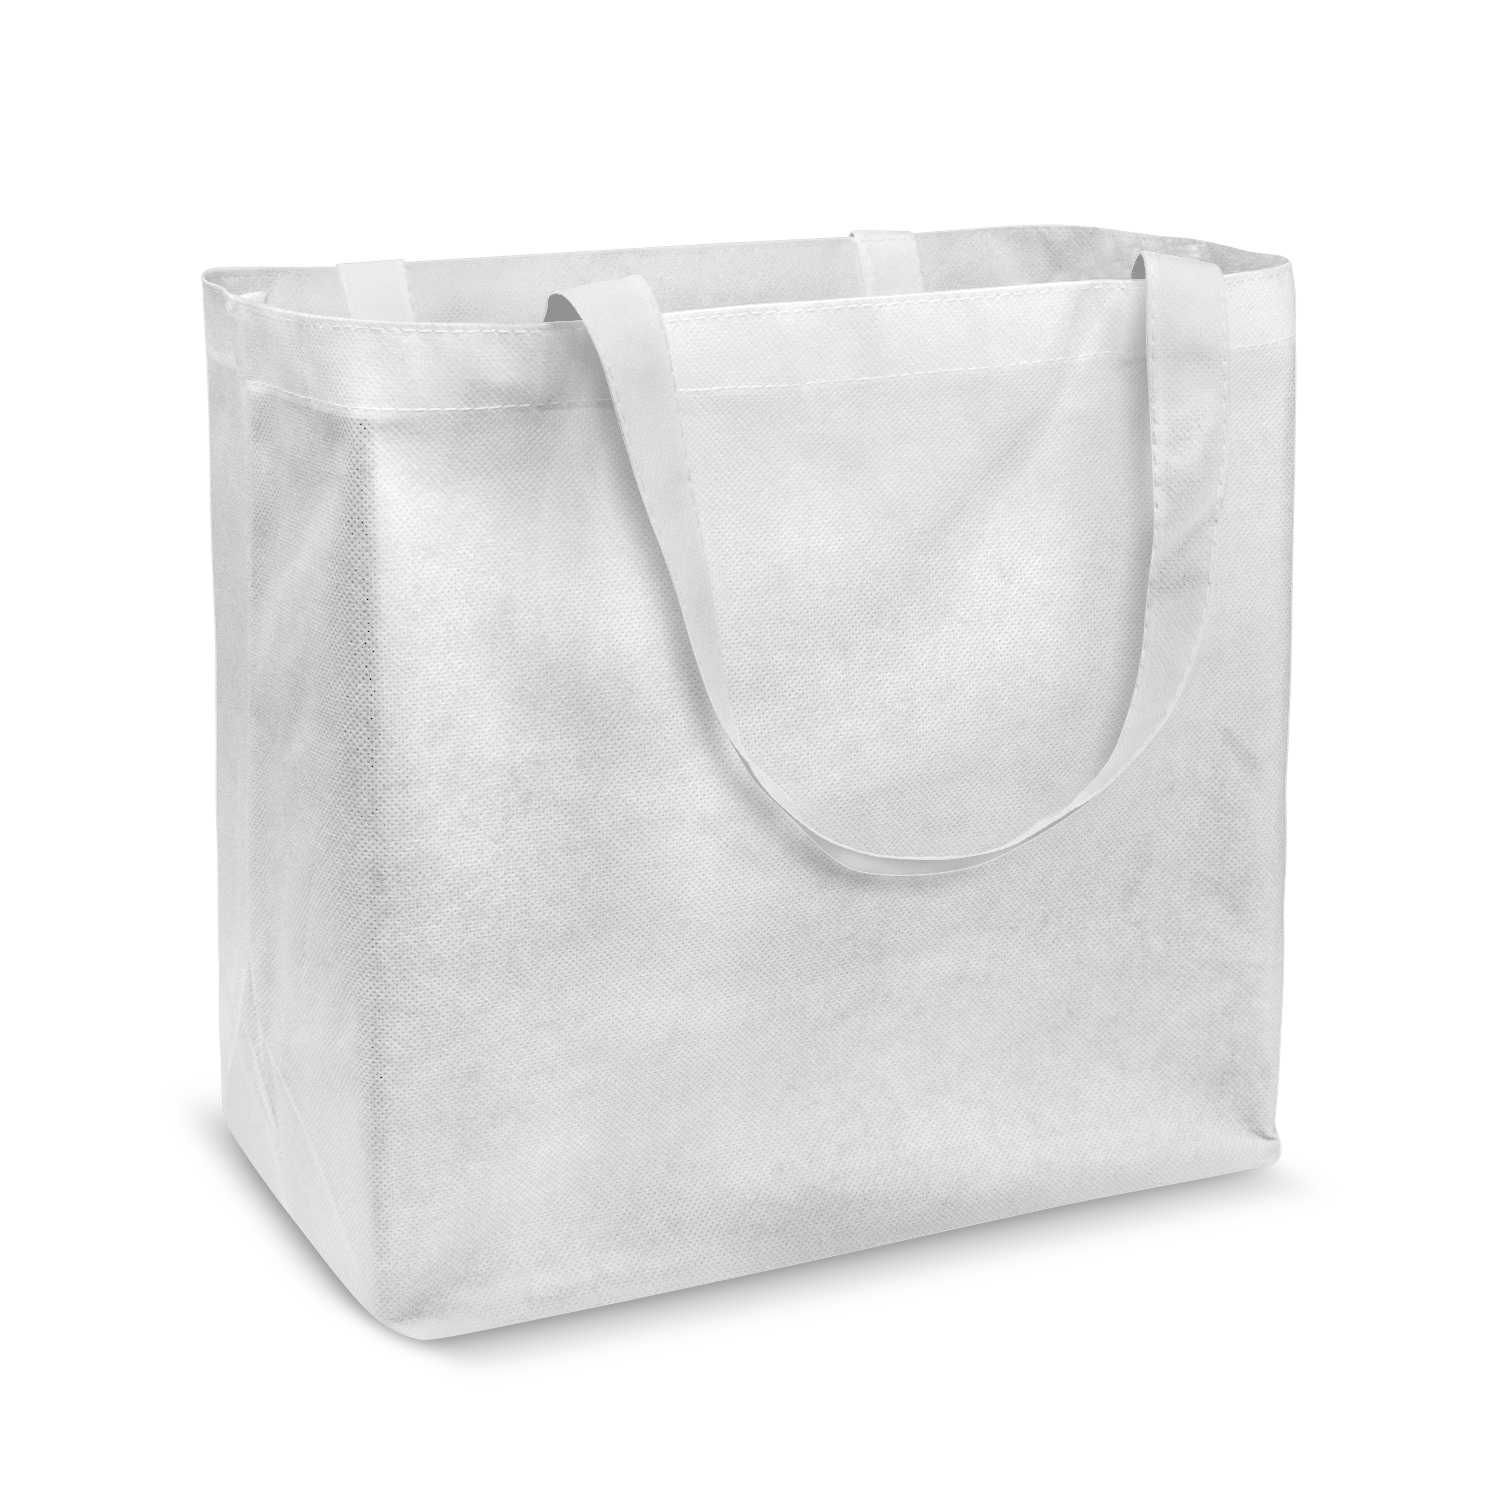 City Shopper Tote Bag - Laminated